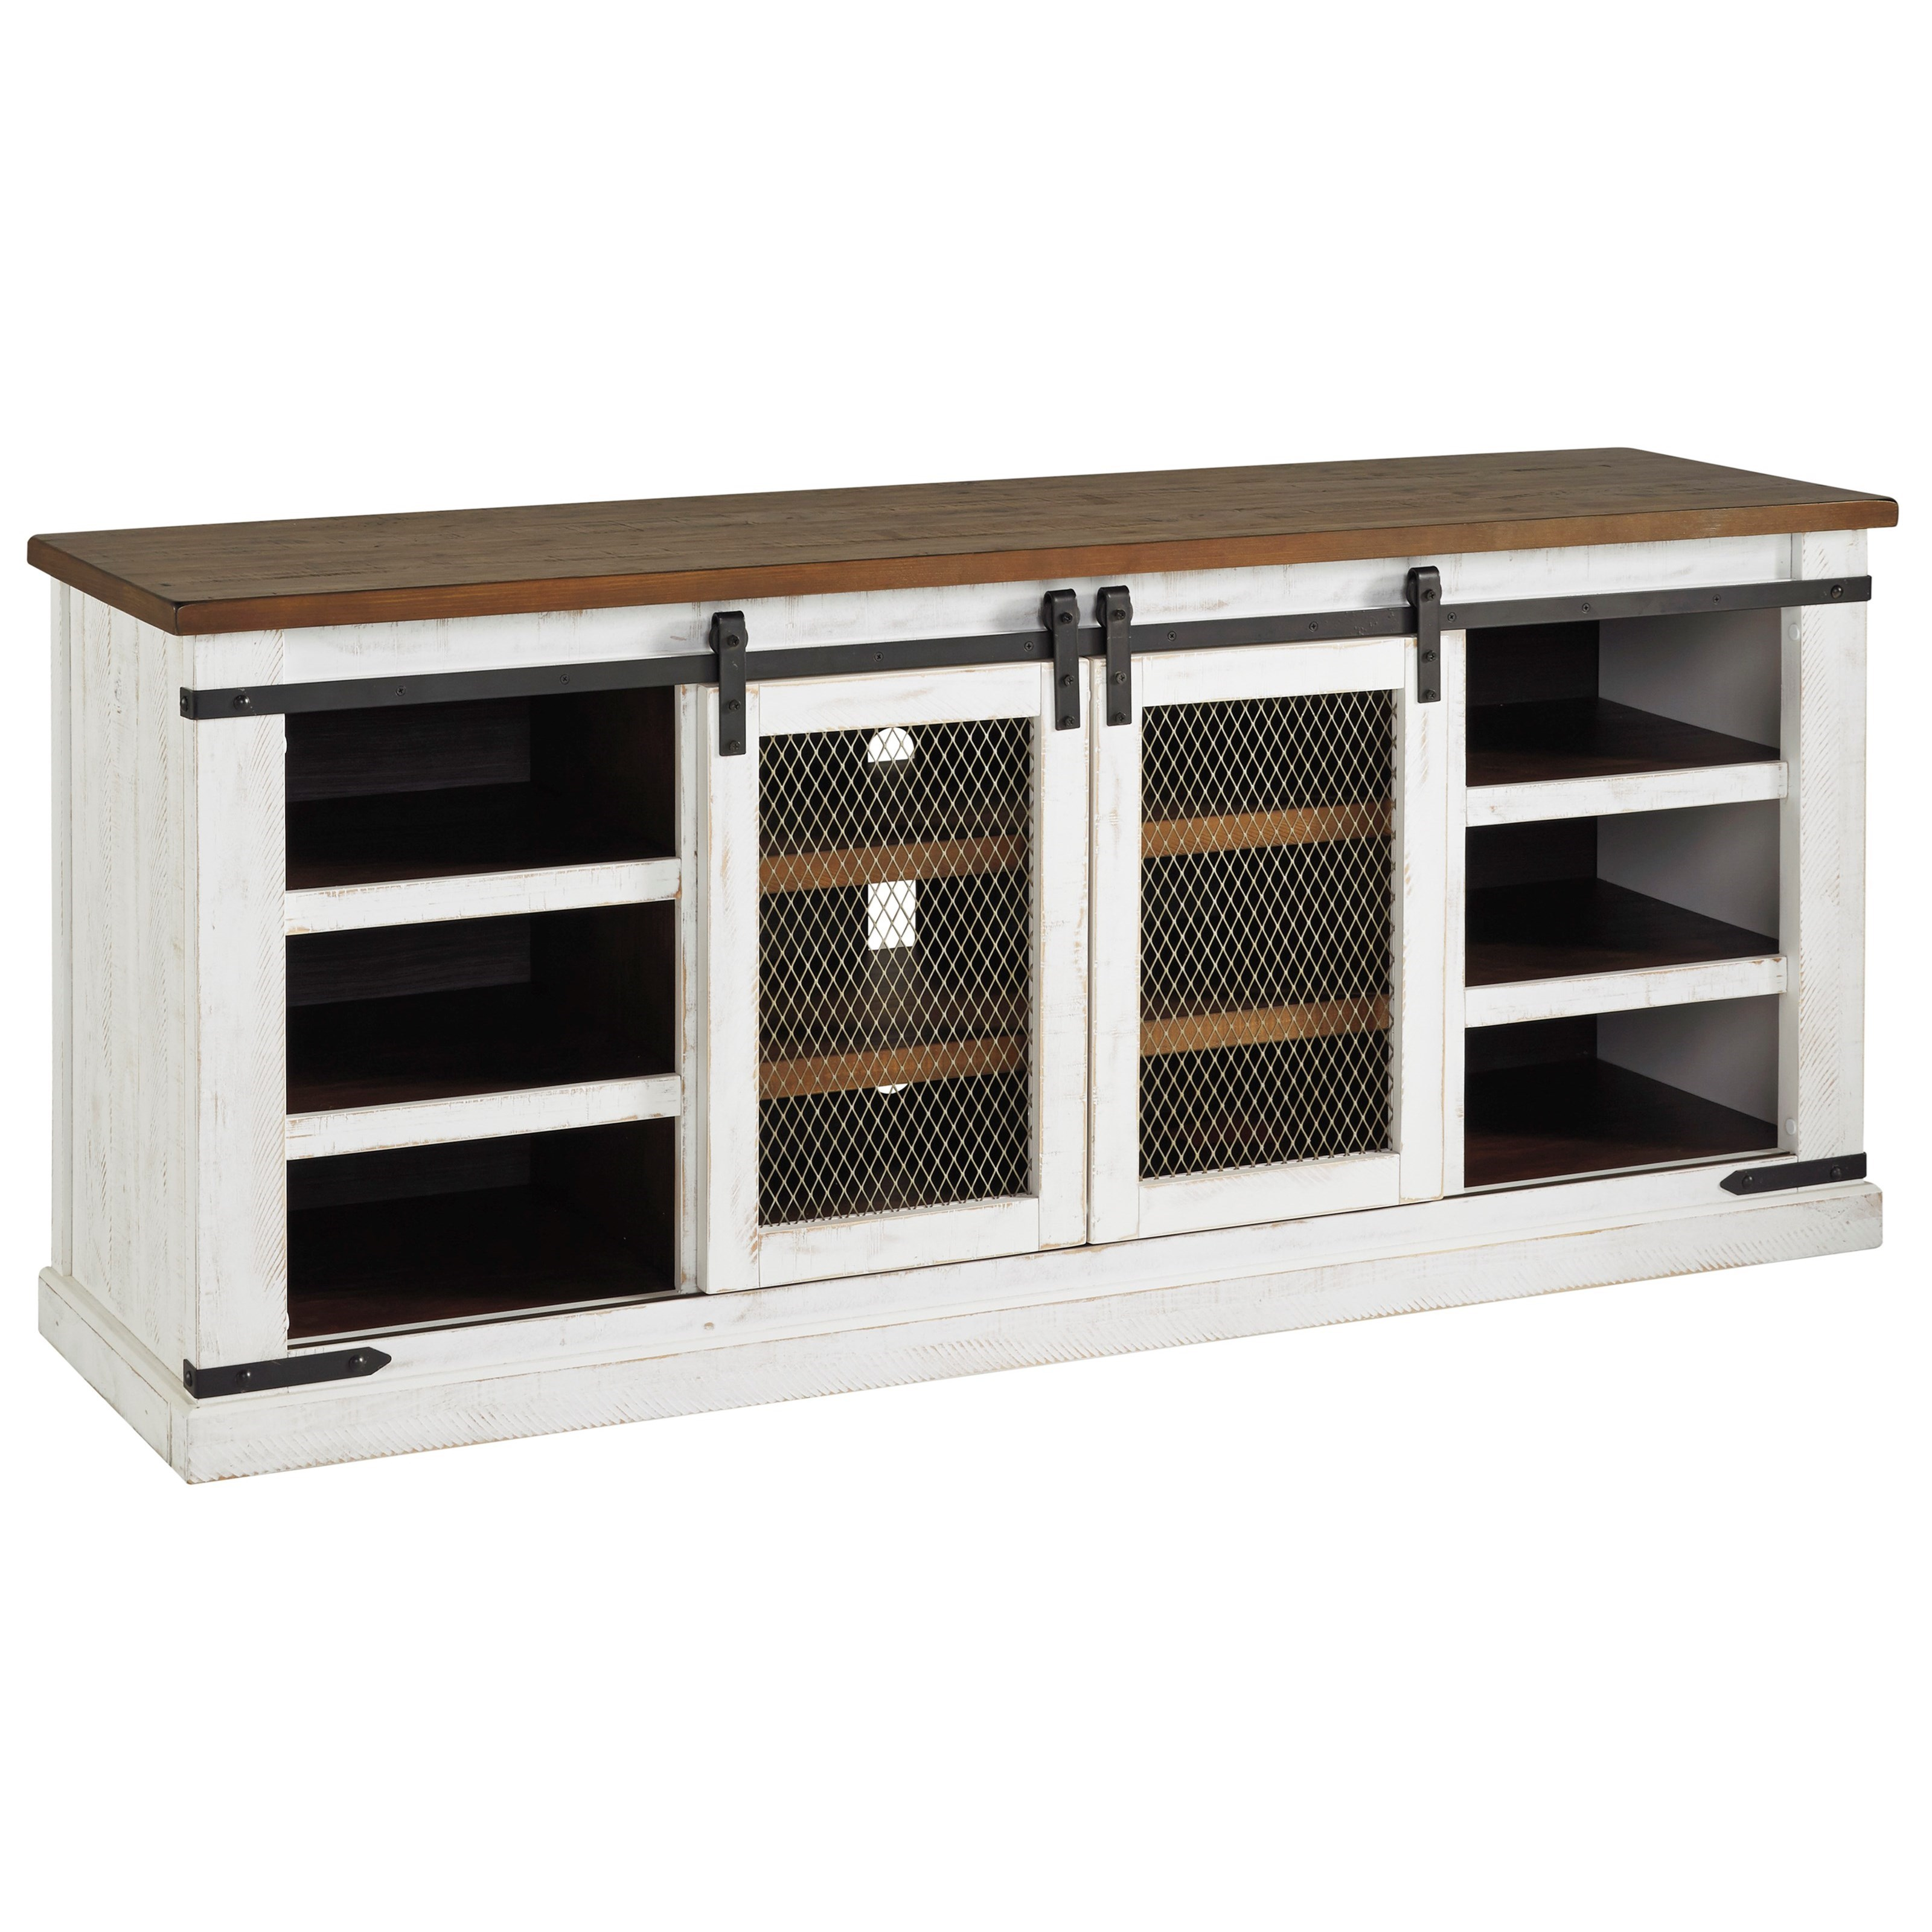 Wystfield Extra Large TV Stand by Signature Design by Ashley at Northeast Factory Direct